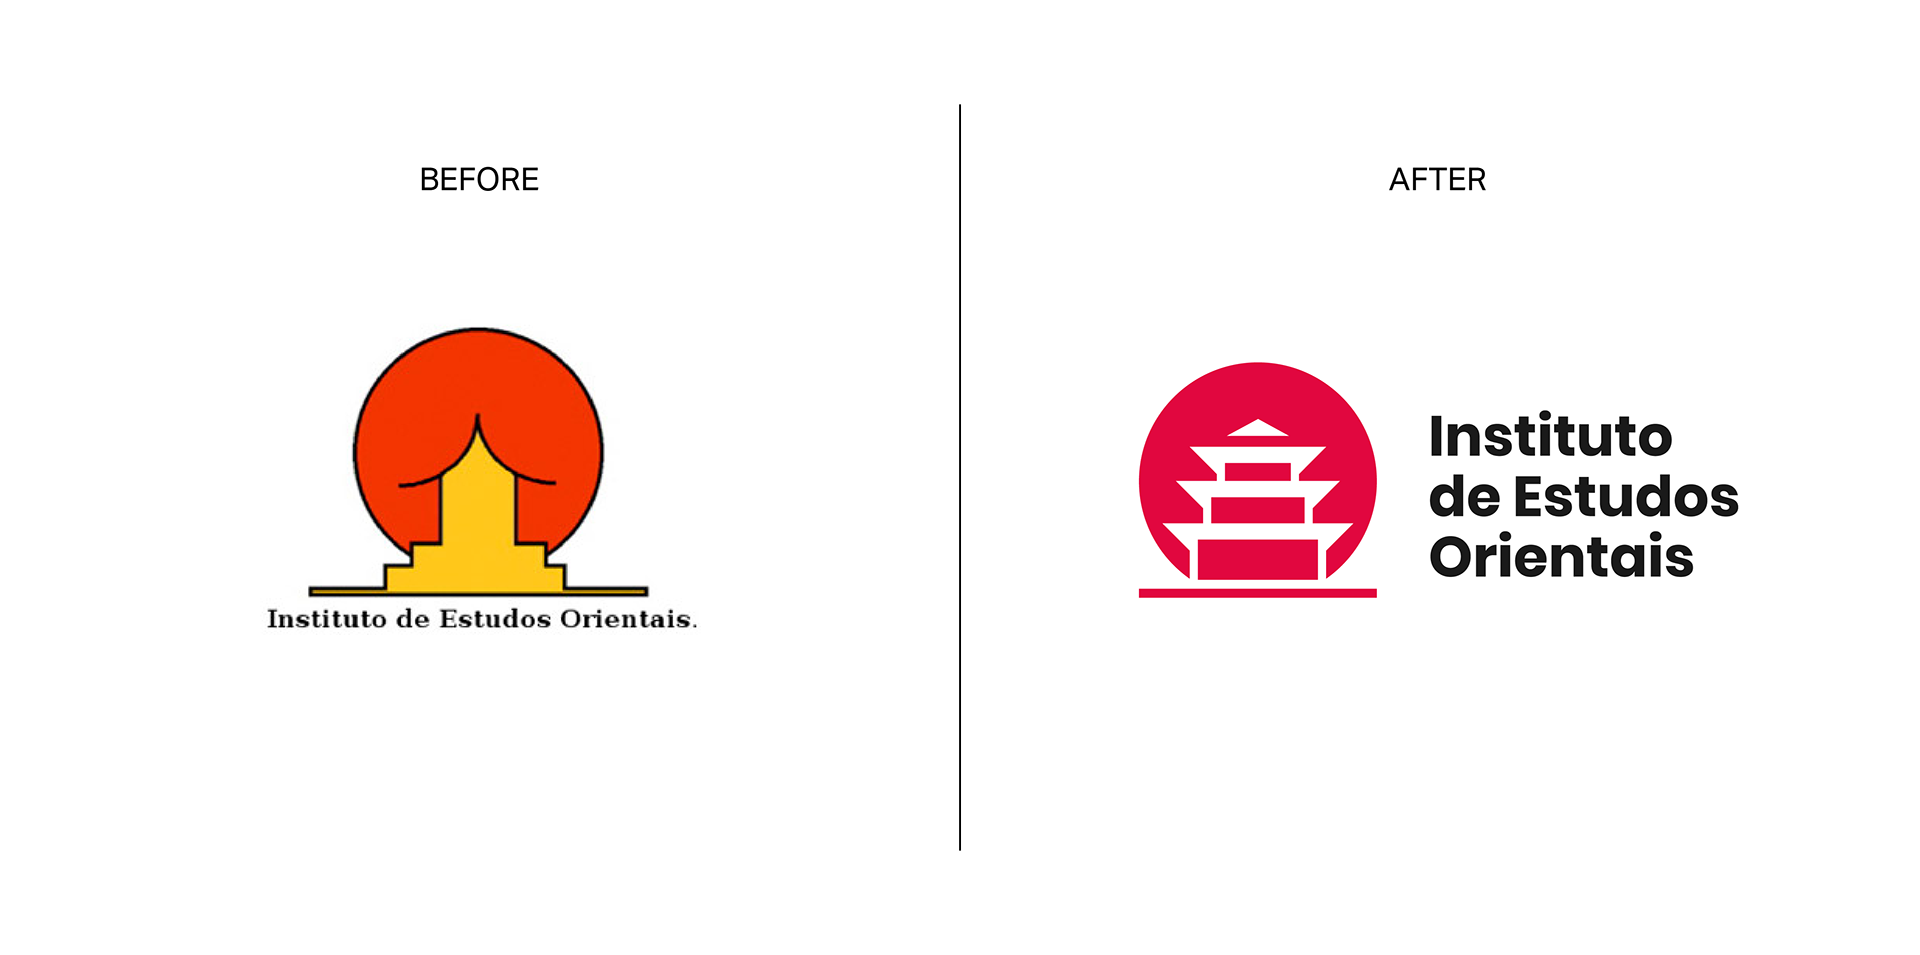 Italian Graphic Designer Redesigns The World's Worst Logos